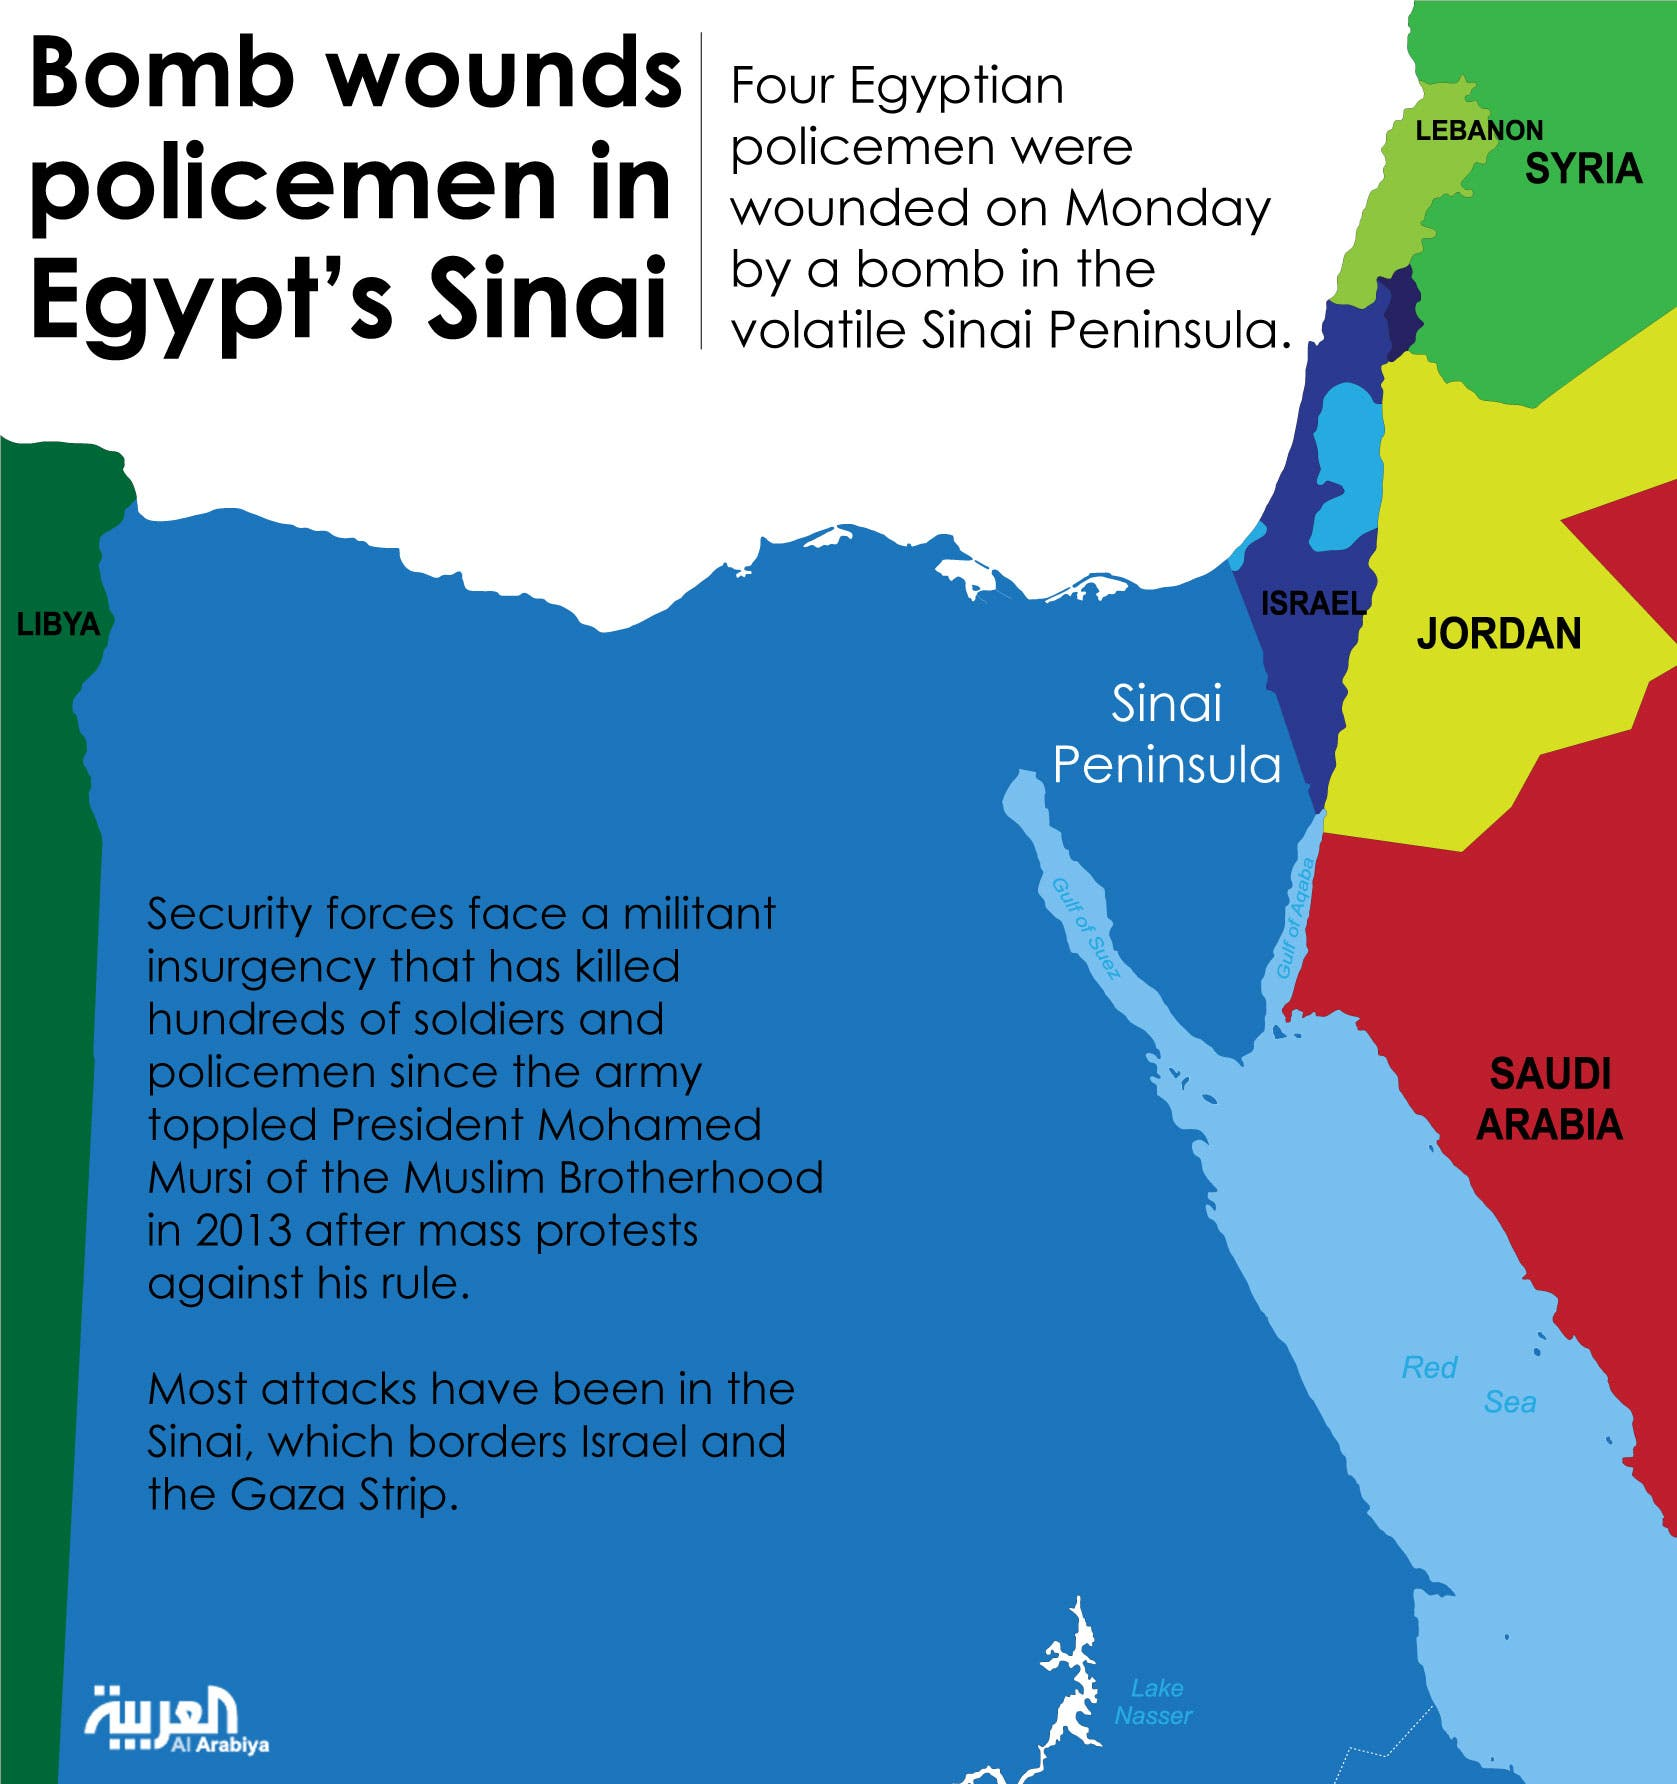 Infographic: Bomb wounds policemen in Egypt's Sinai